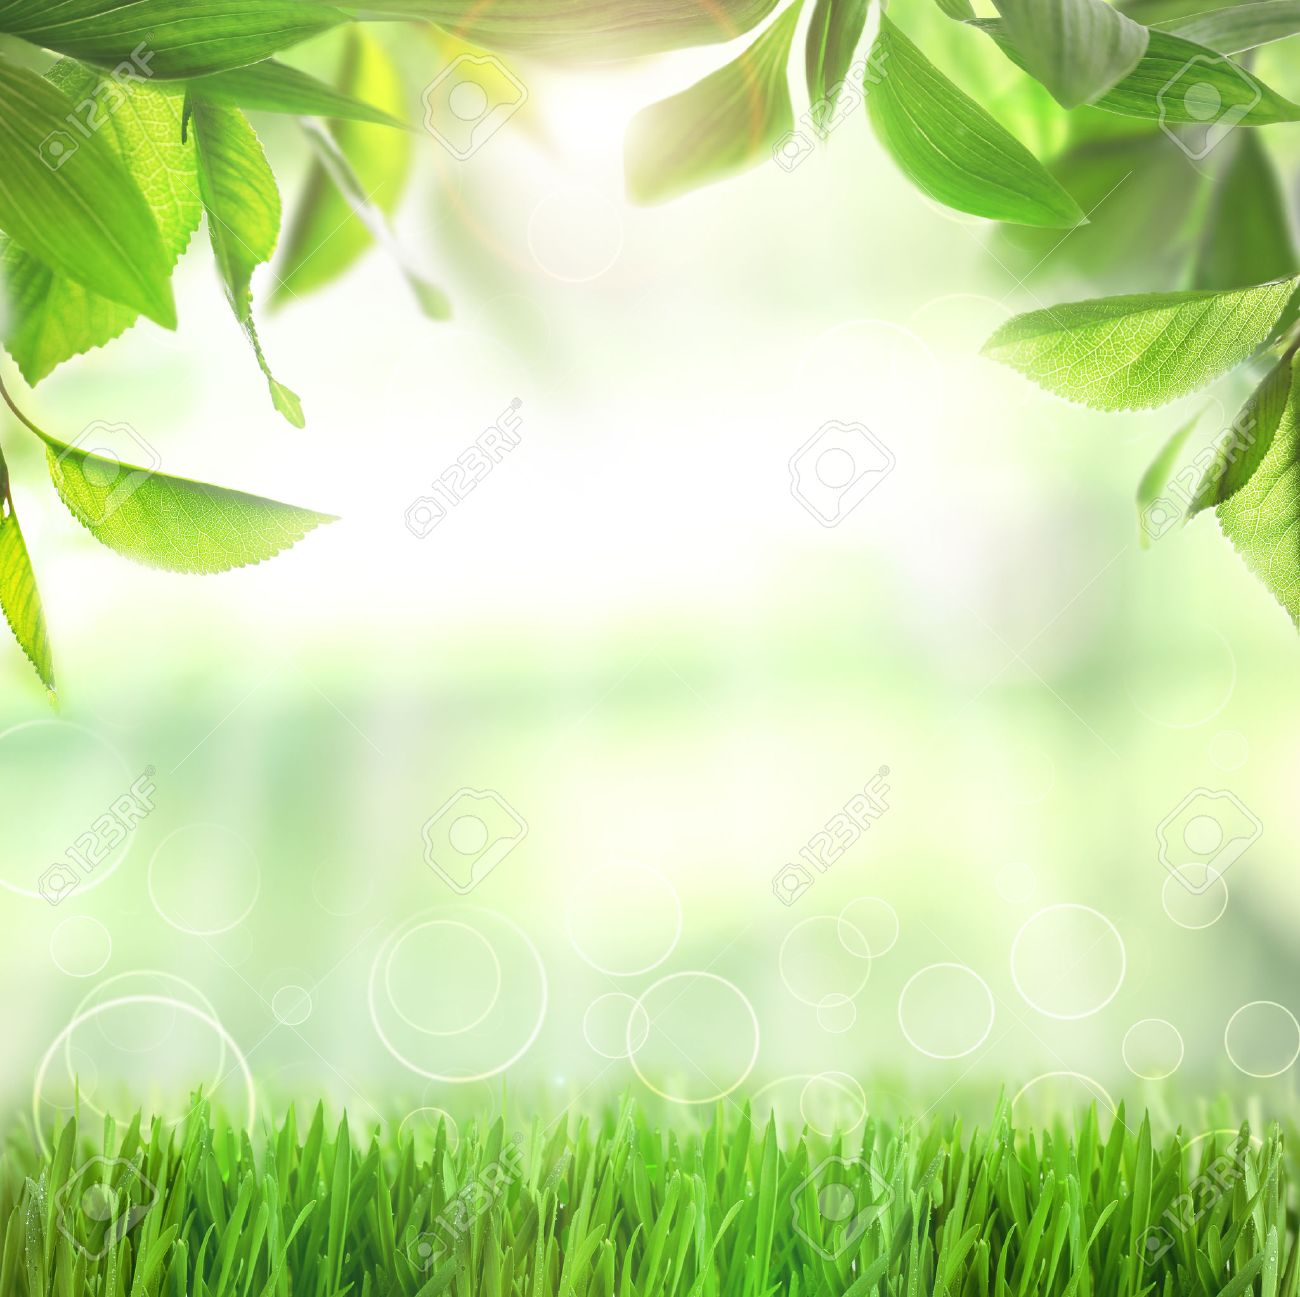 spring or summer season abstract nature background with green